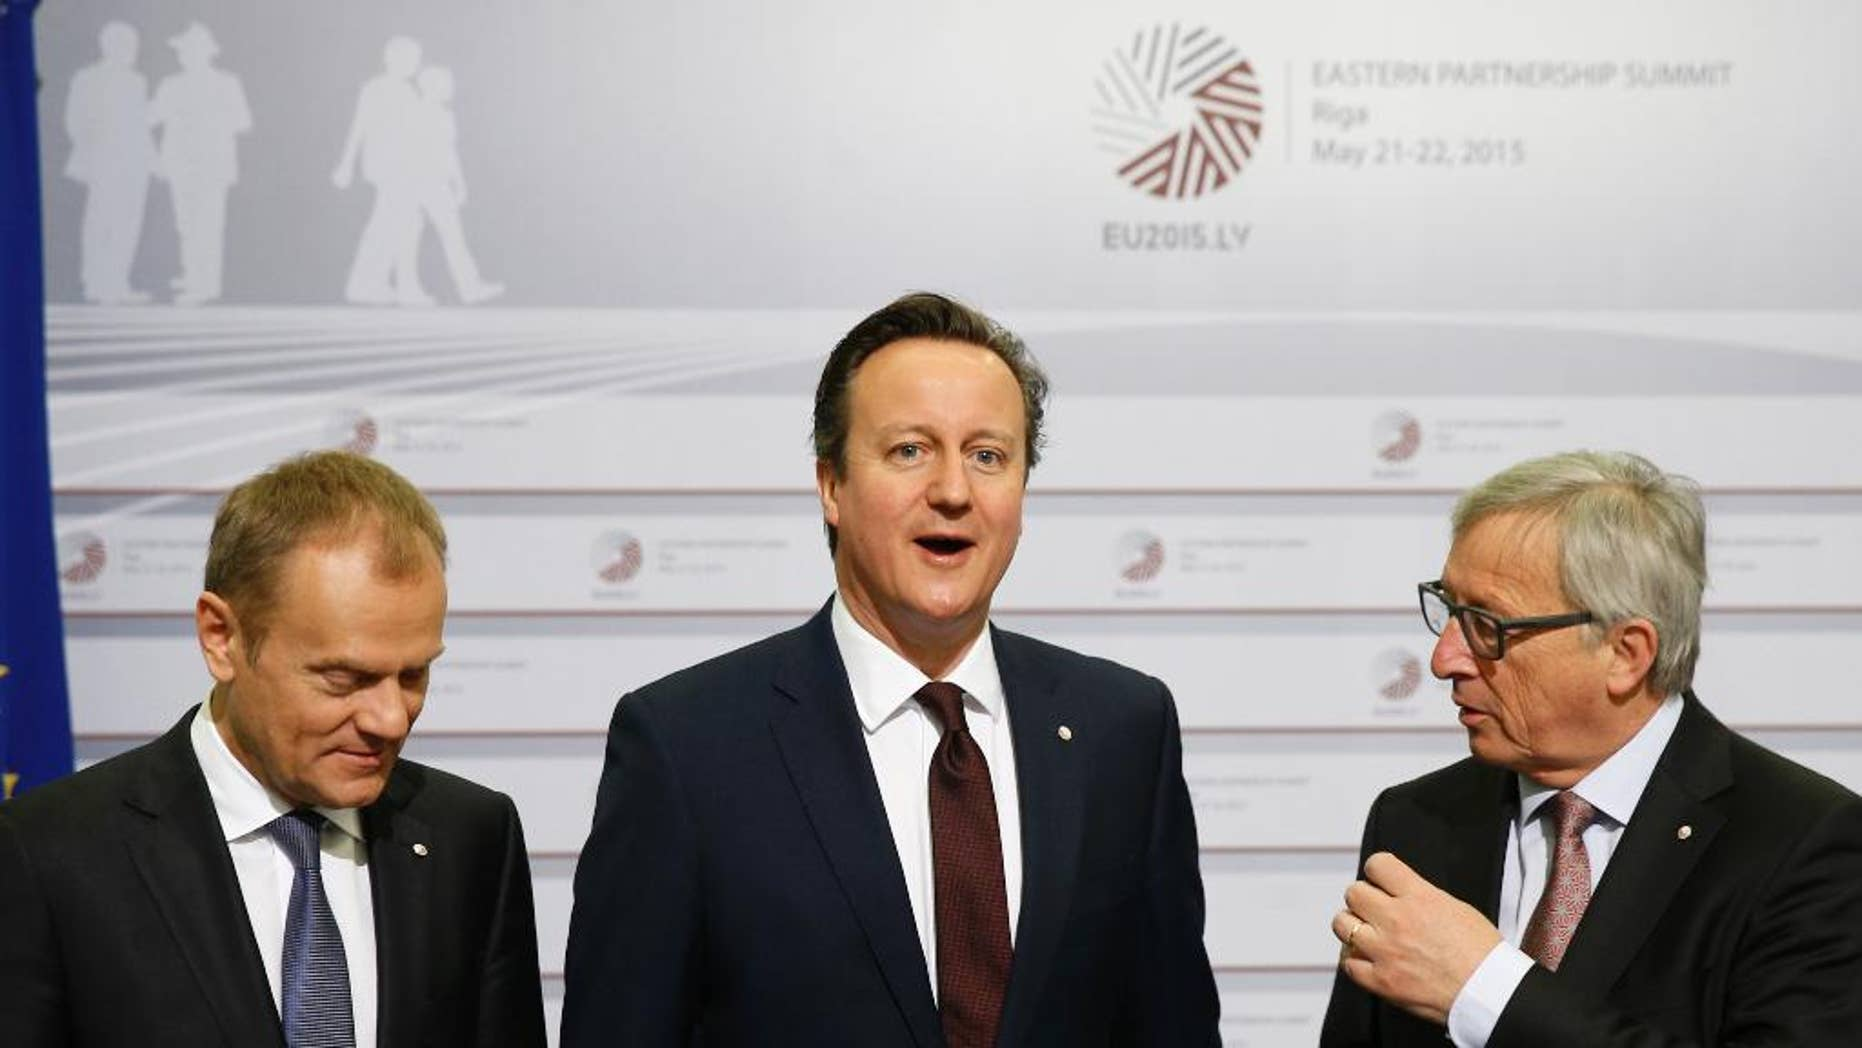 British Prime Minister David Cameron, center, stands with European Commission President Jean-Claude Juncker, right, and European Council President Donald Tusk during arrivals at the Eastern Partnership summit in Riga, on Friday, May 22, 2015. EU leaders gather for a second day of meetings with six post-communist nations to discuss various issues, including enlargement, the economy and Ukraine. (AP Photo/Mindaugas Kulbis)